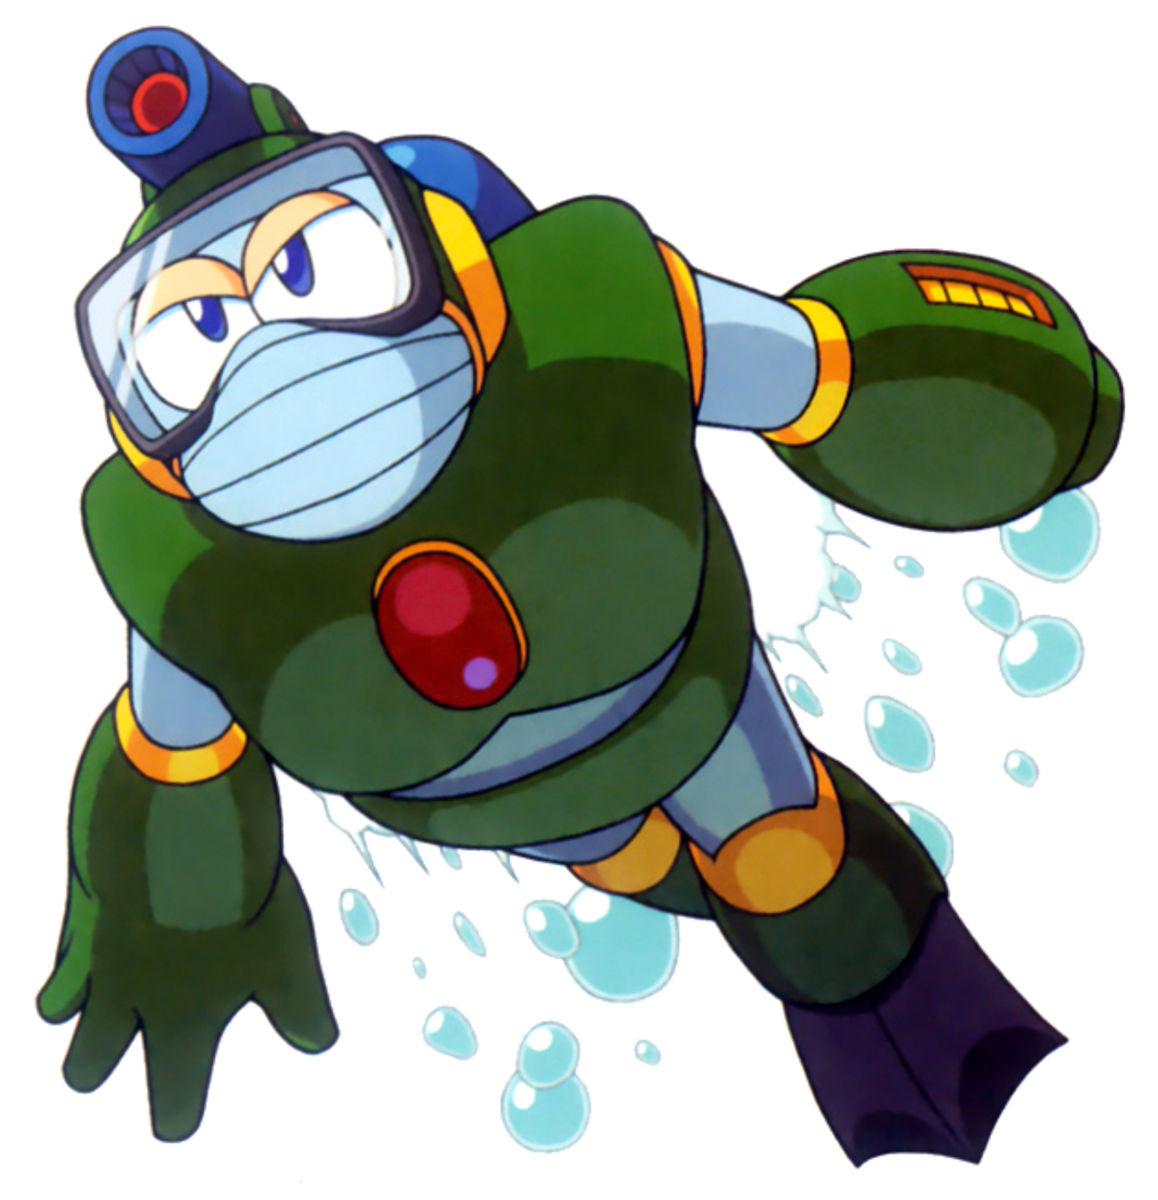 Bubble Man has the versatility of shooting bubbles from his arm cannon and head gun and a buster shot from his arm cannon.